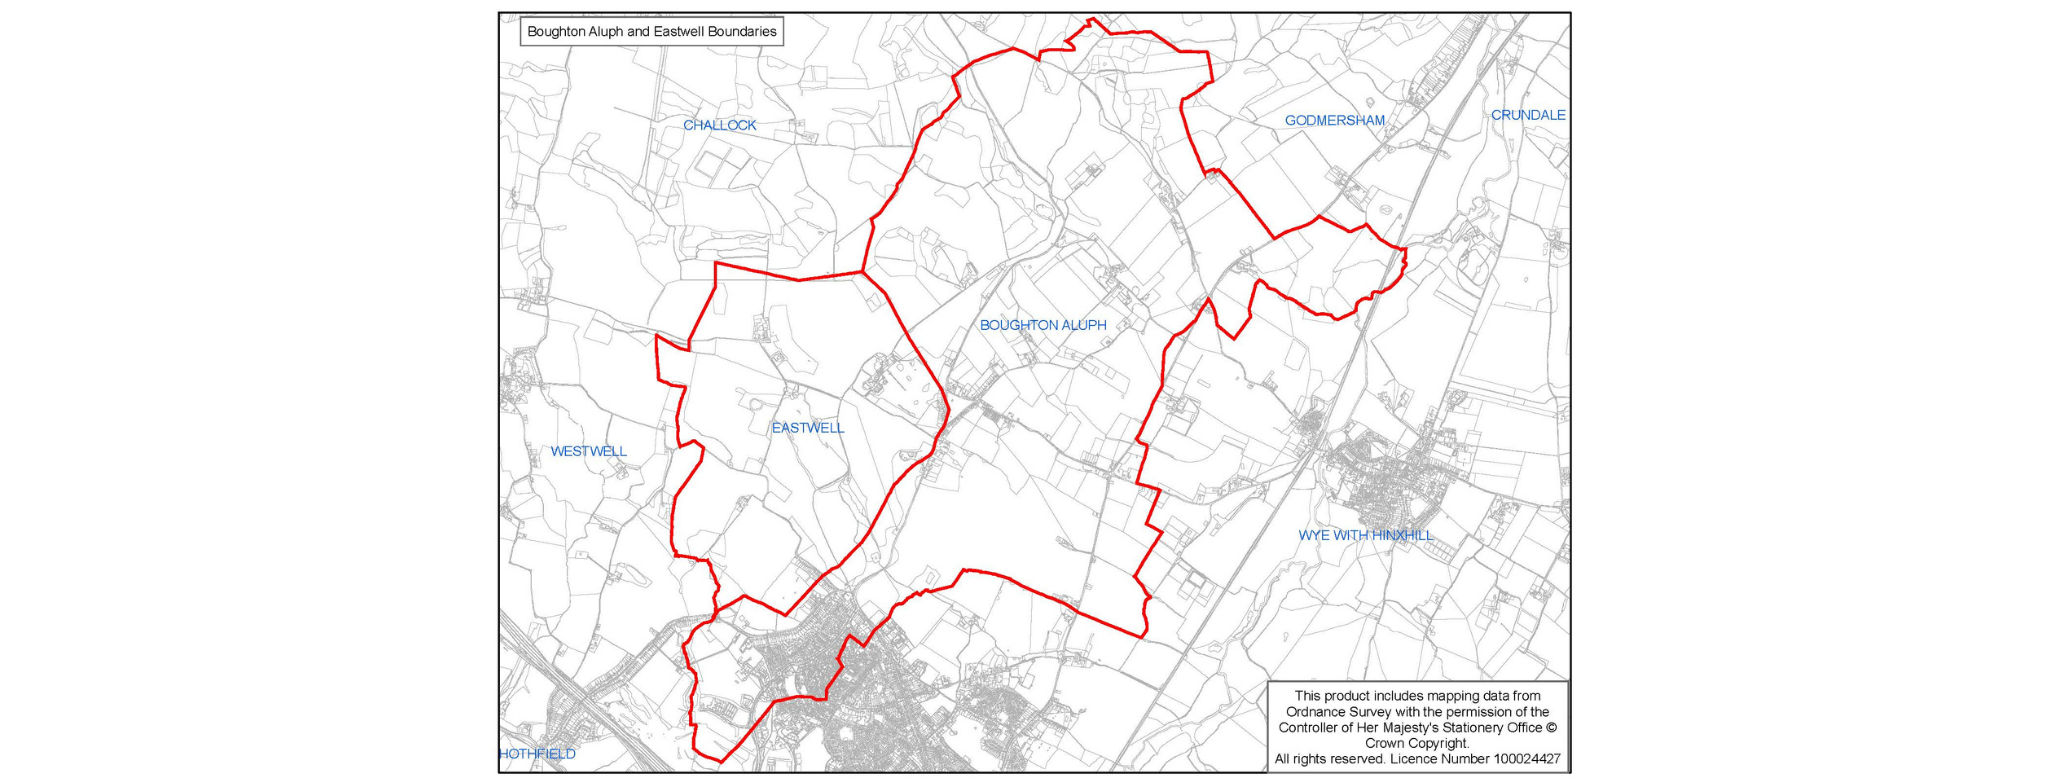 News article entitled Have your say on the Boughton Aluph and Eastwell Neighbourhood Plan